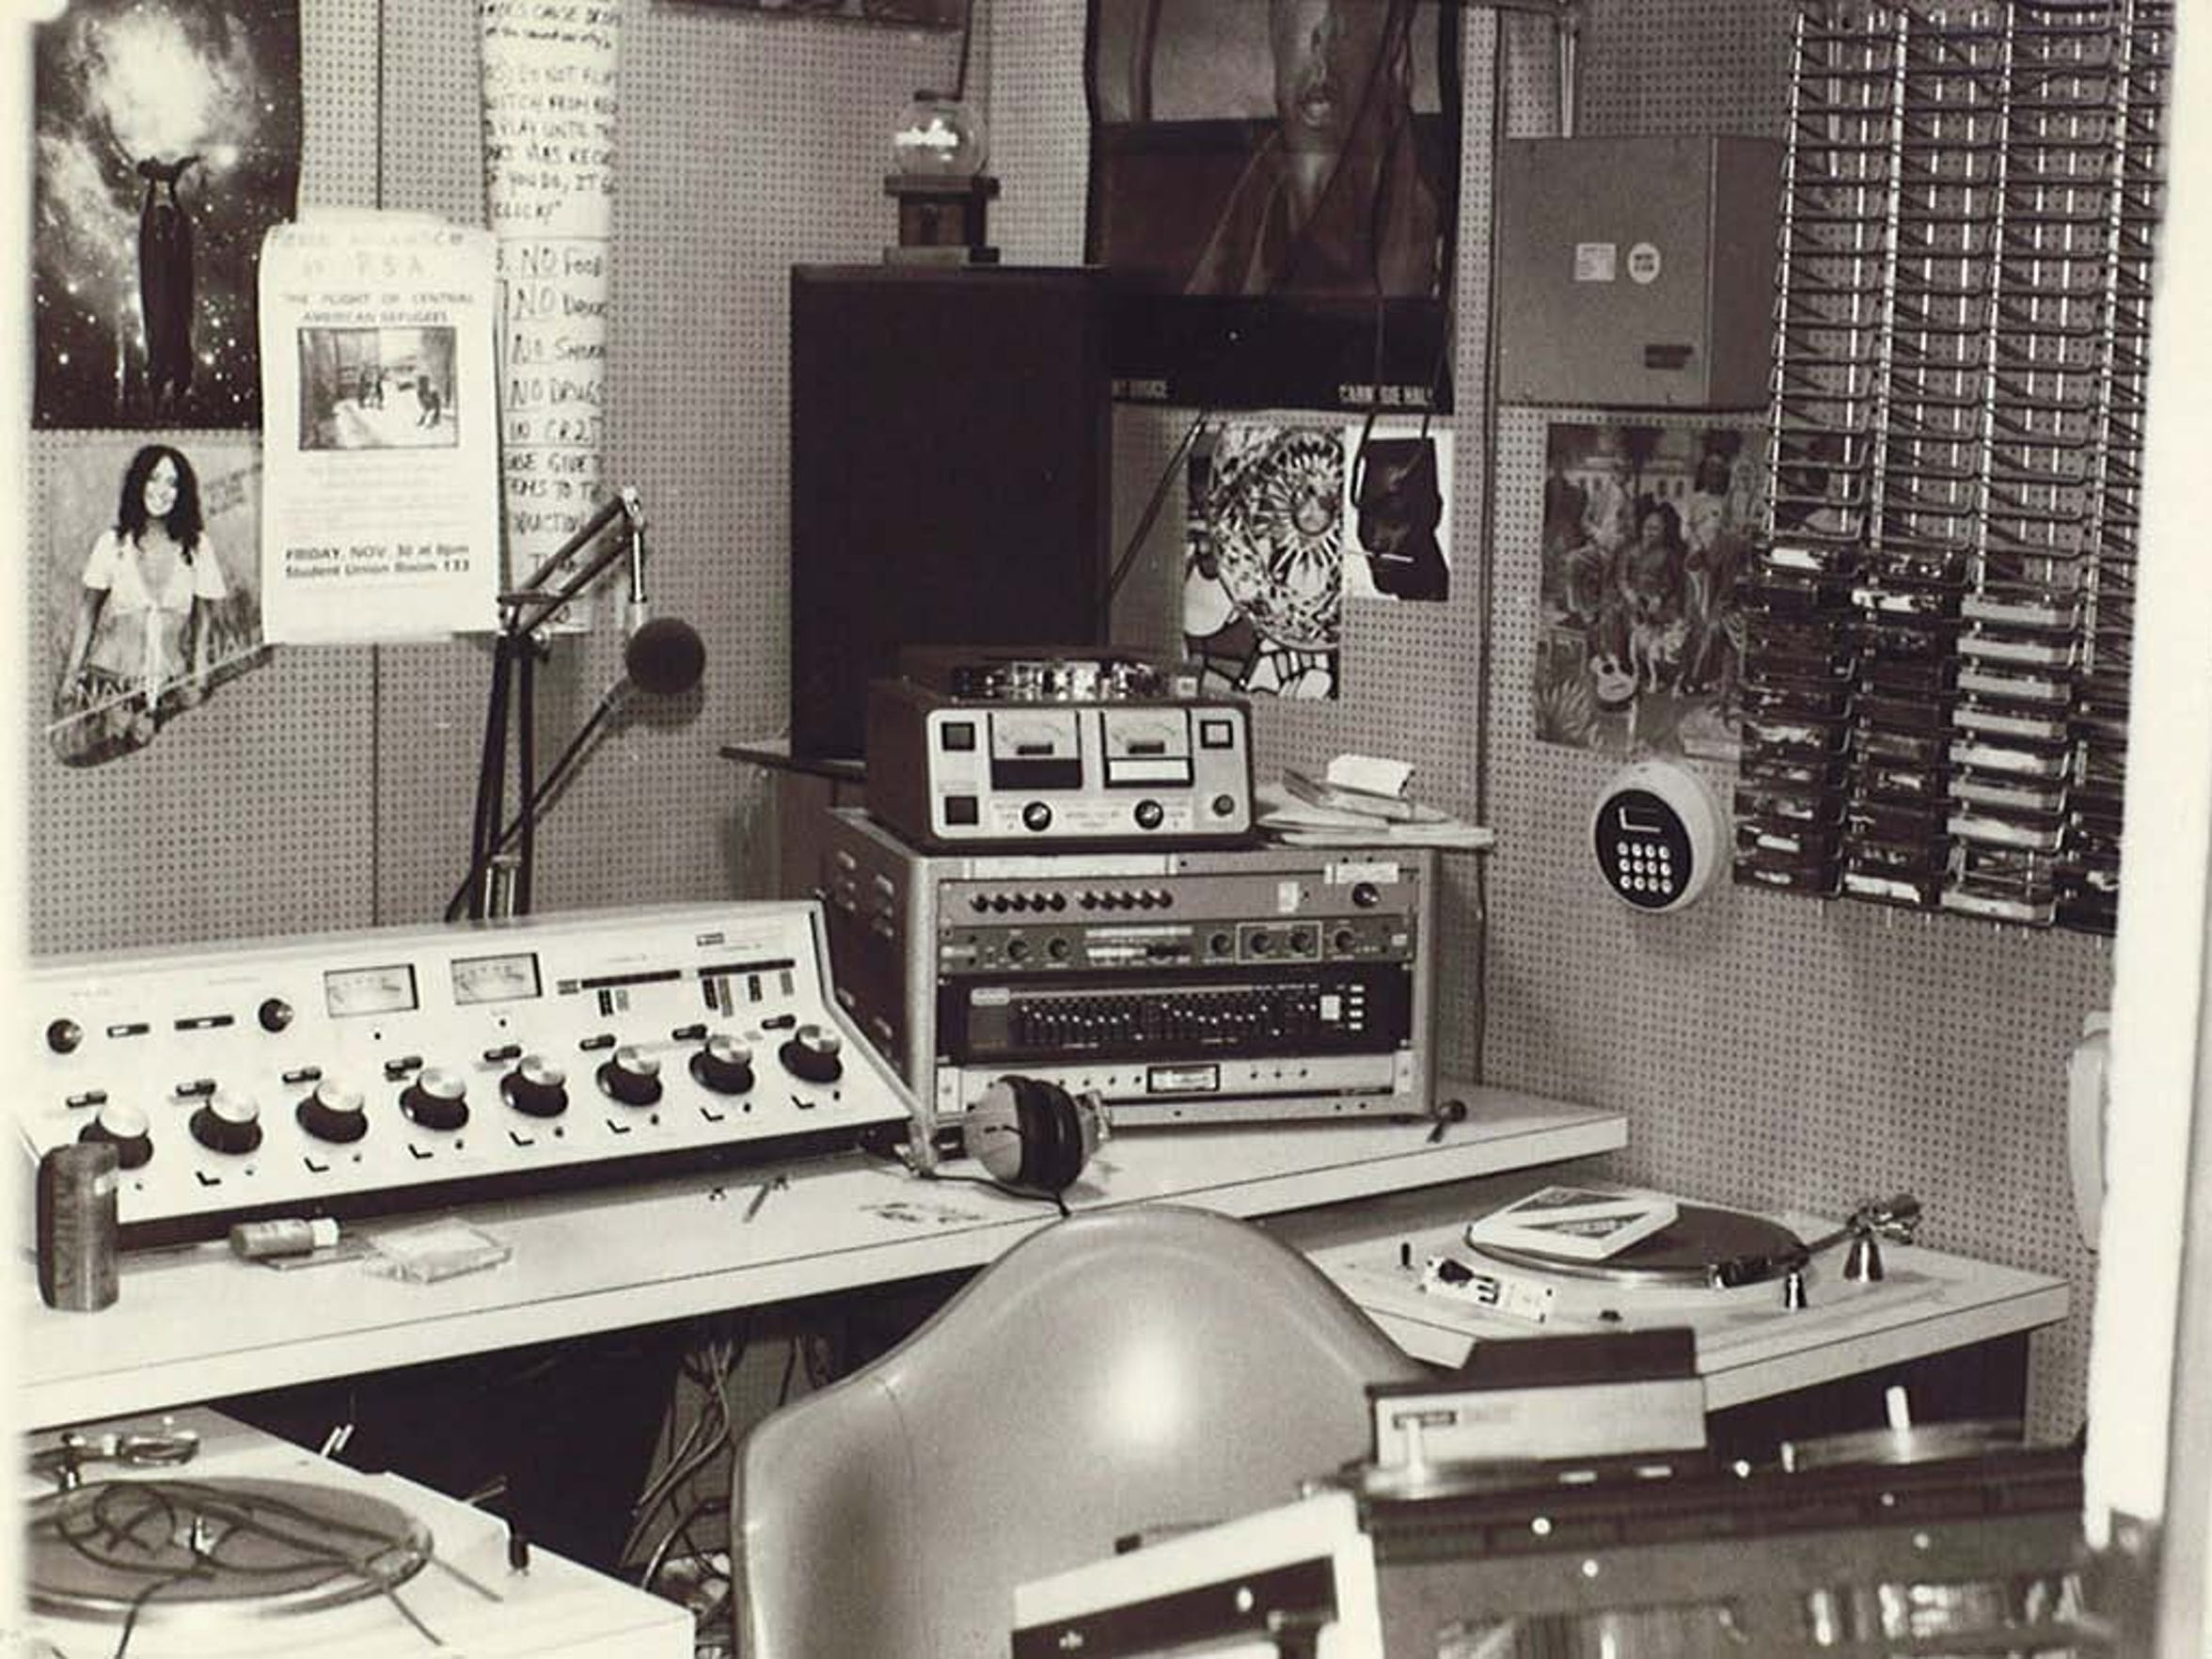 The control room at WHRW Binghamton in the early 1980s included turntables, a cart machine and a control board among its technology.